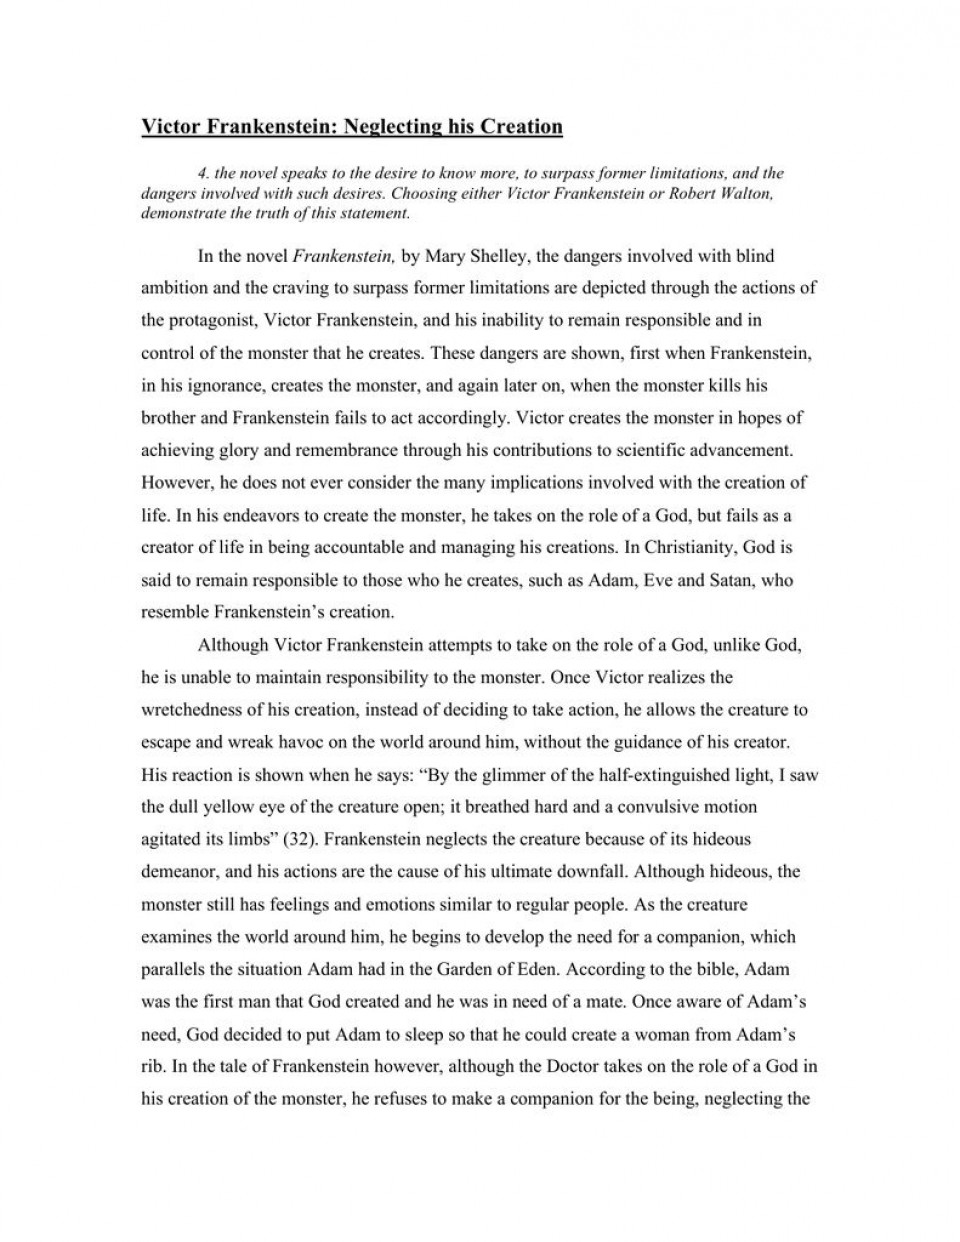 004 Fascinating Frankenstein Essay Idea  Critical Pdf Question Who I The Real Monster960